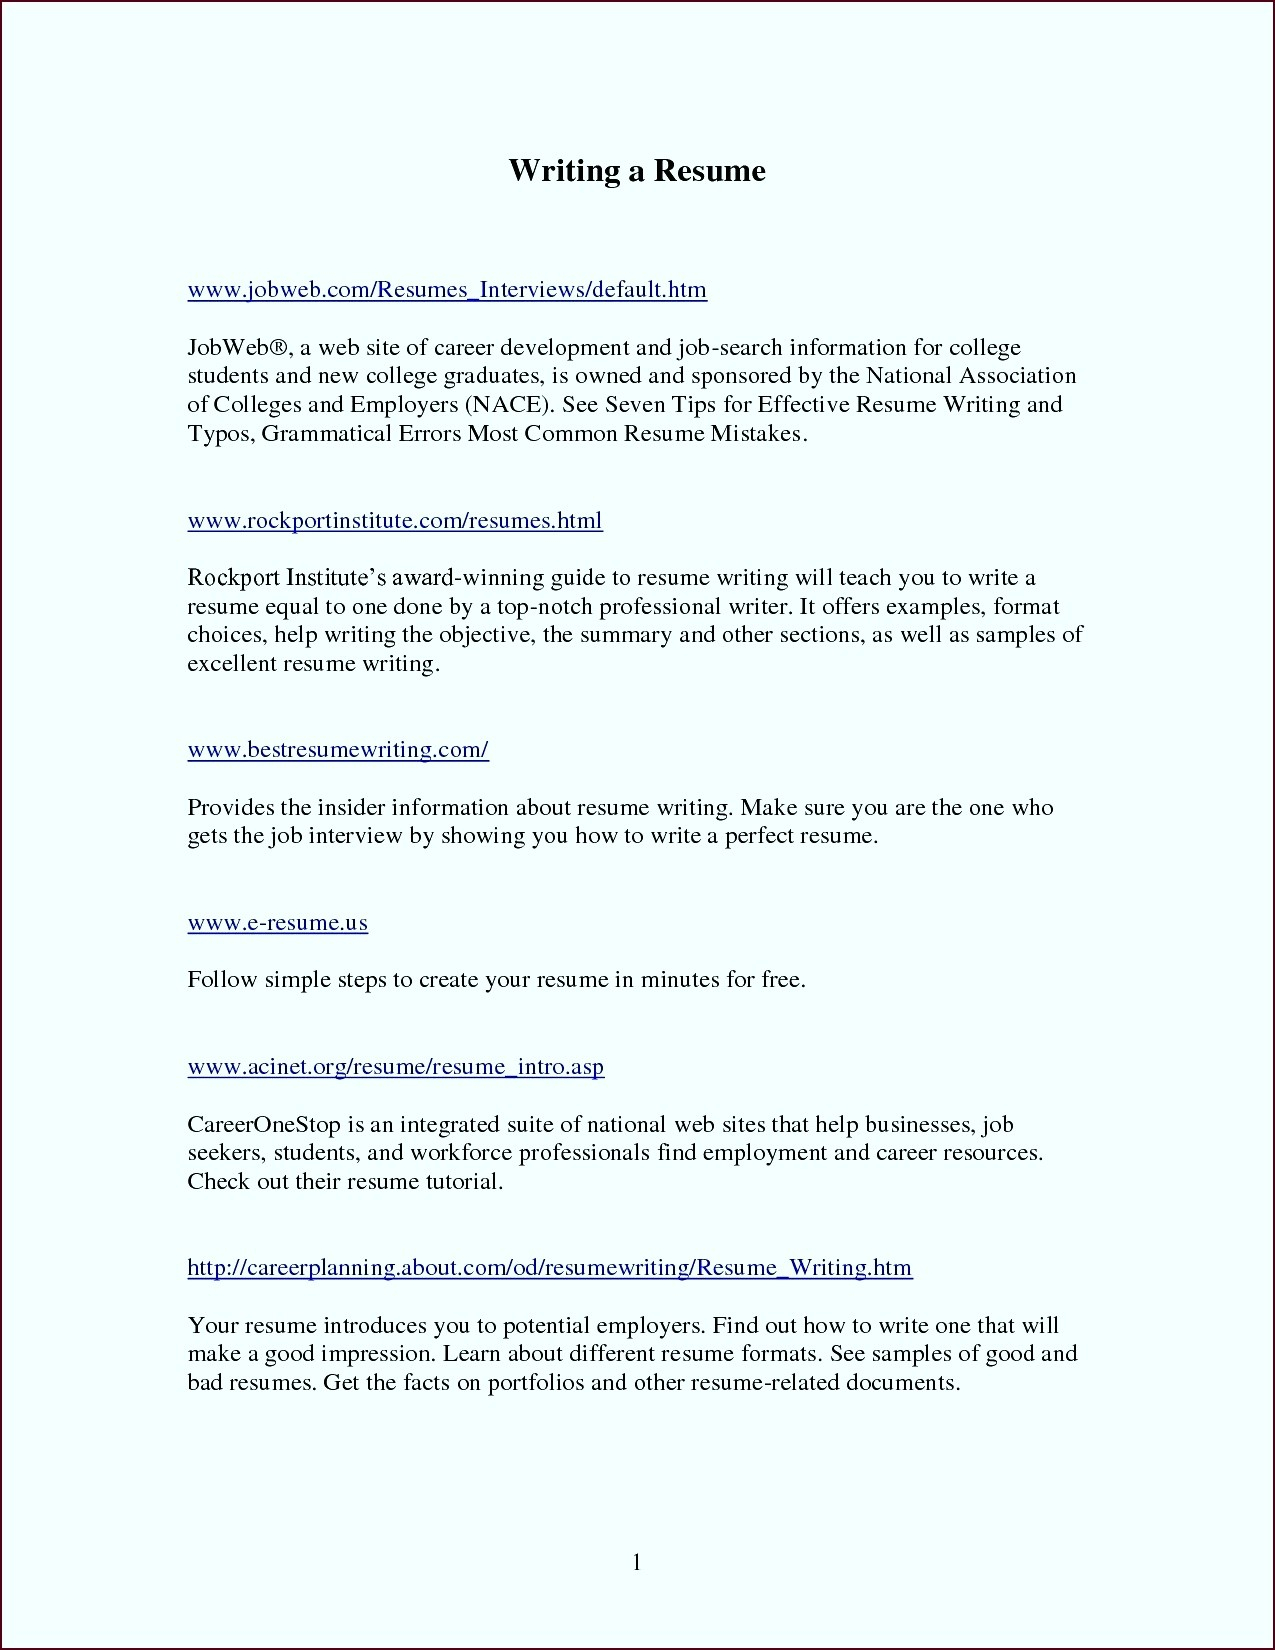 Simple Offer Letter Template - Cpt Job Fer Letter Sample New 7 Job Fer Letter Template Template